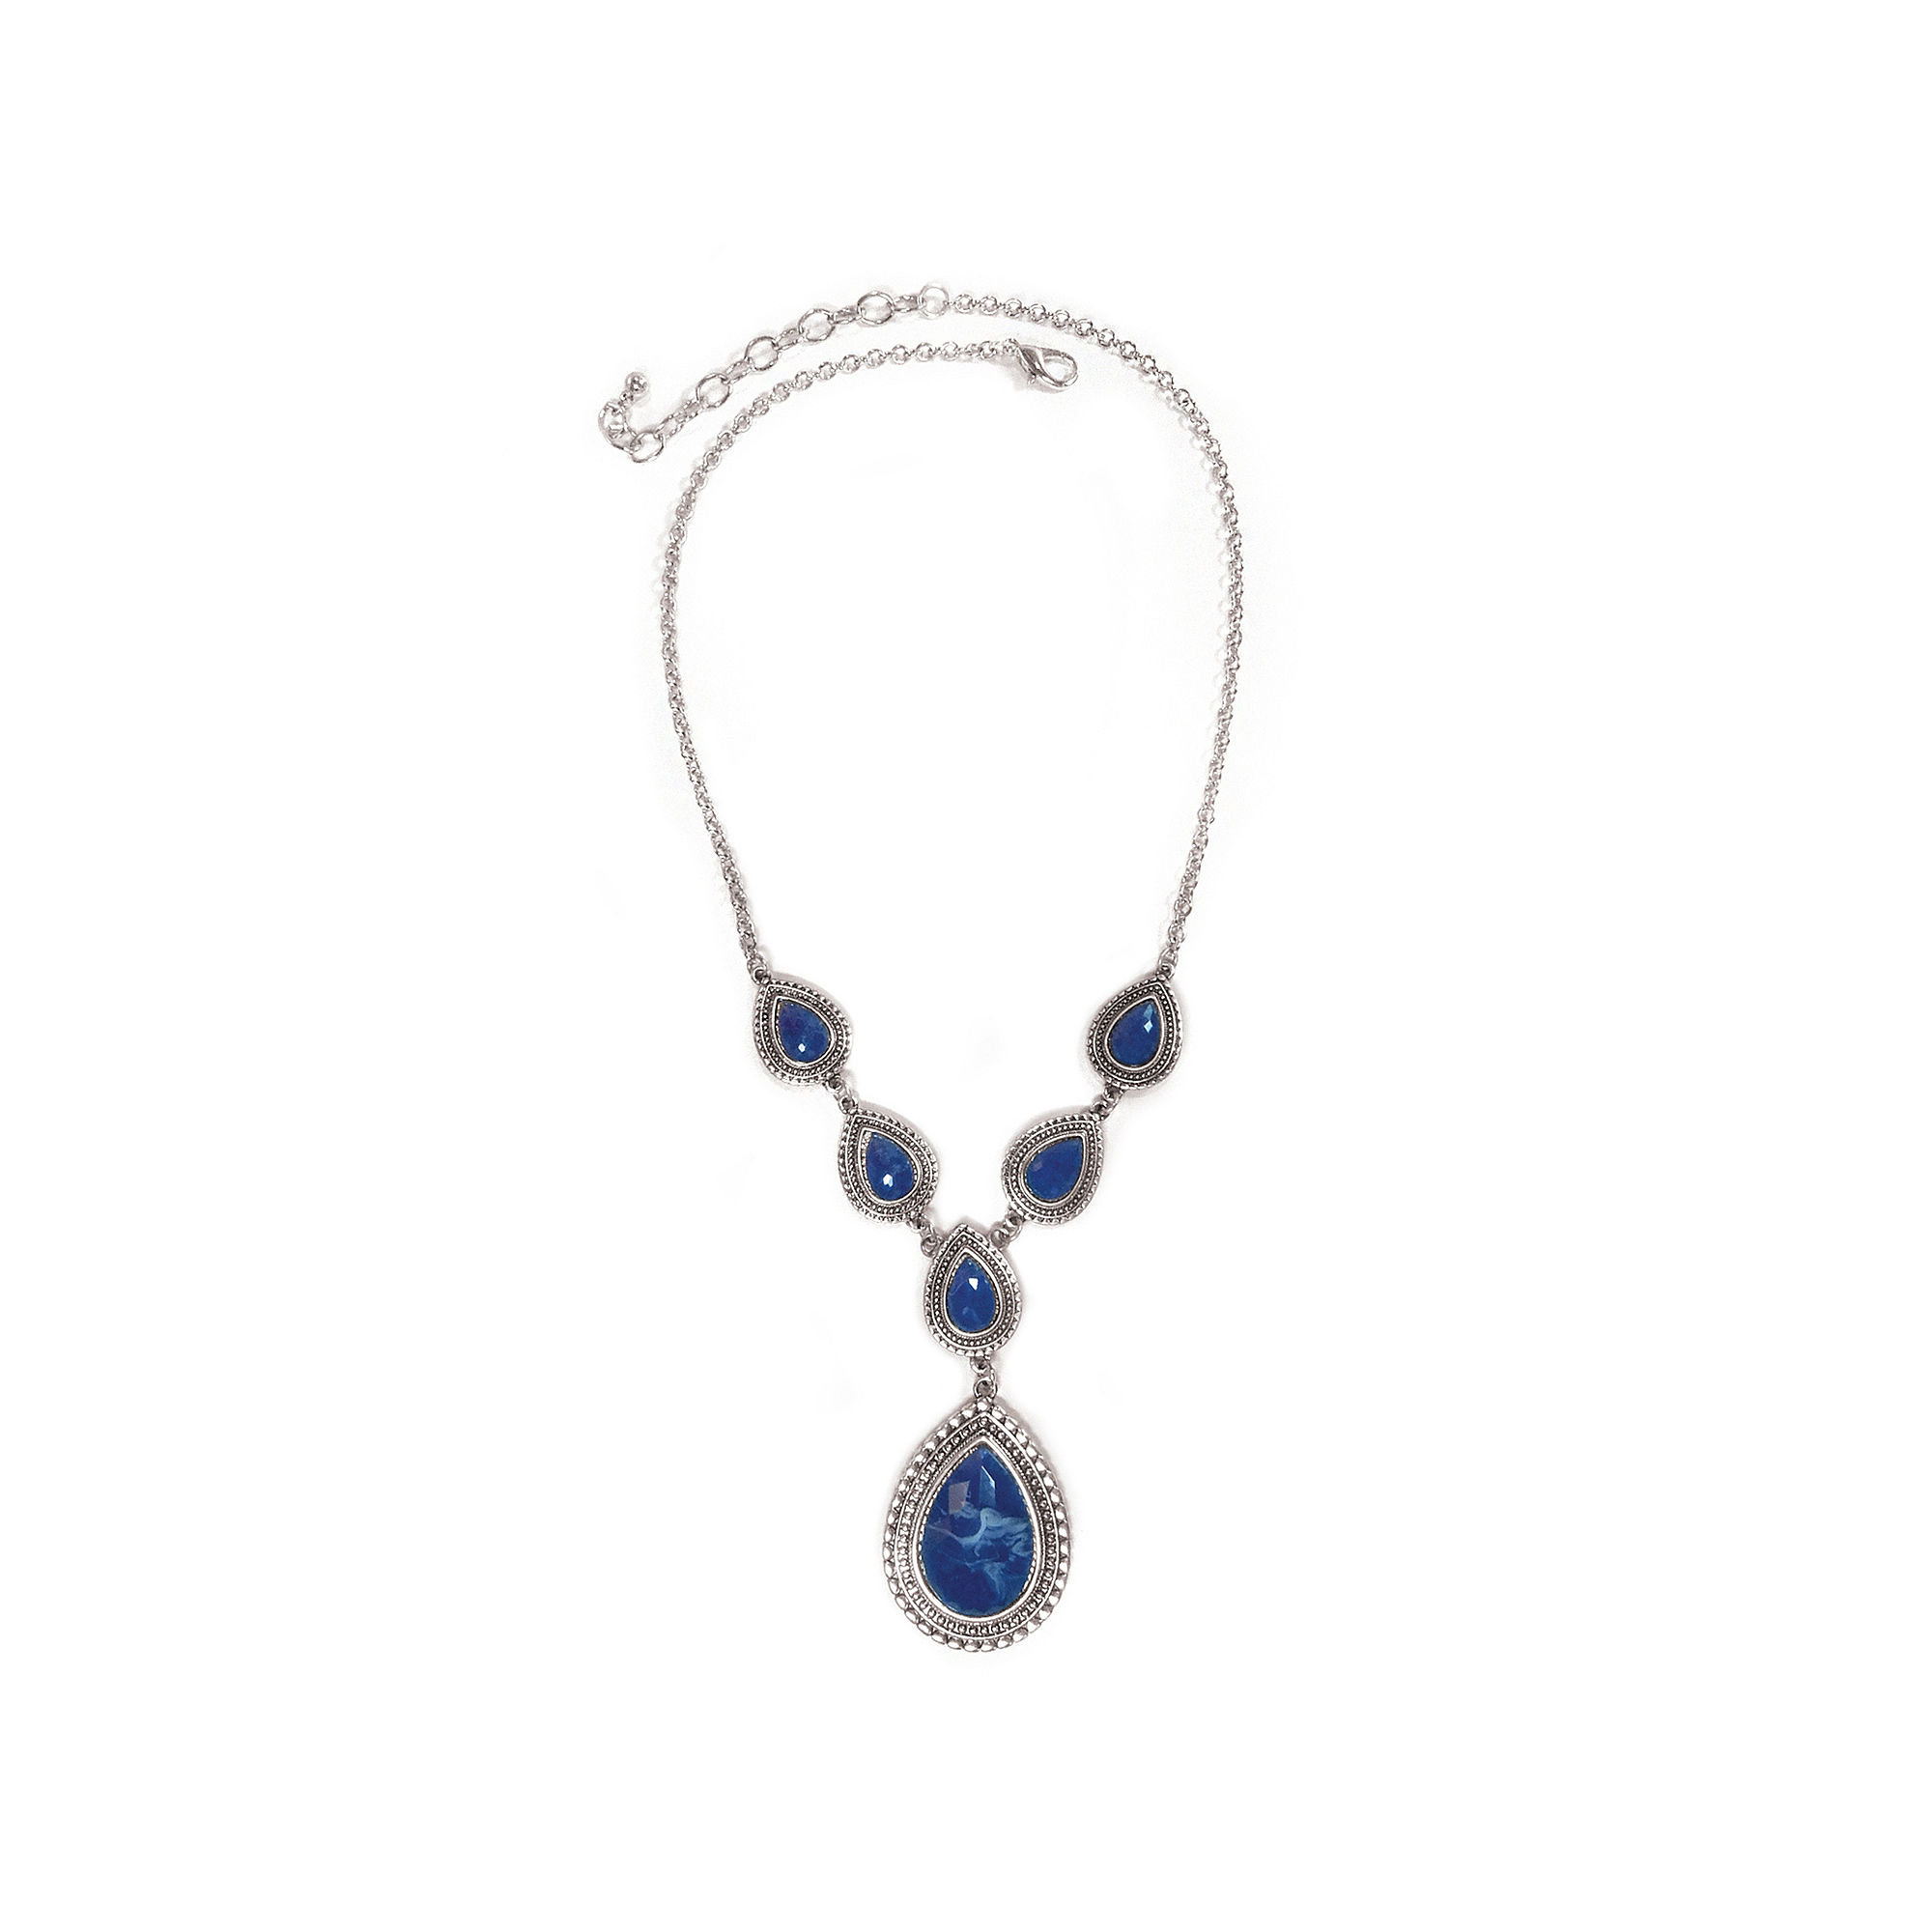 Studio By Carol Dauplaise Silver-Tone Dark Blue Pear Y-Necklace